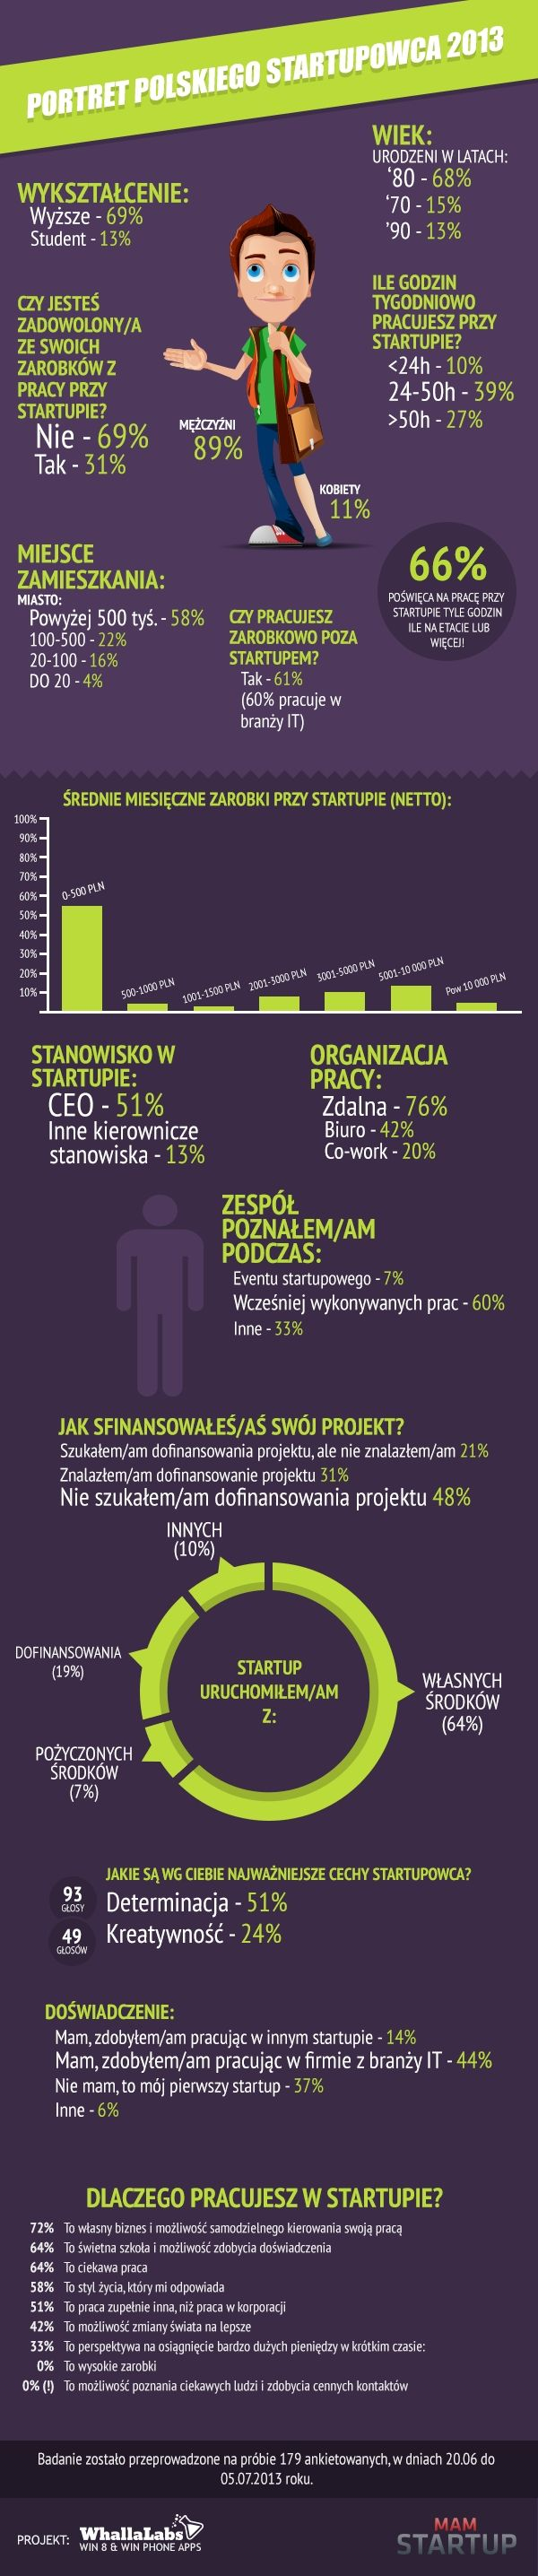 Independent, frugal and well-educated - it's how looks a profile of Polish startup entrepreneur according to MamStartup.pl. #startup #poland #internet